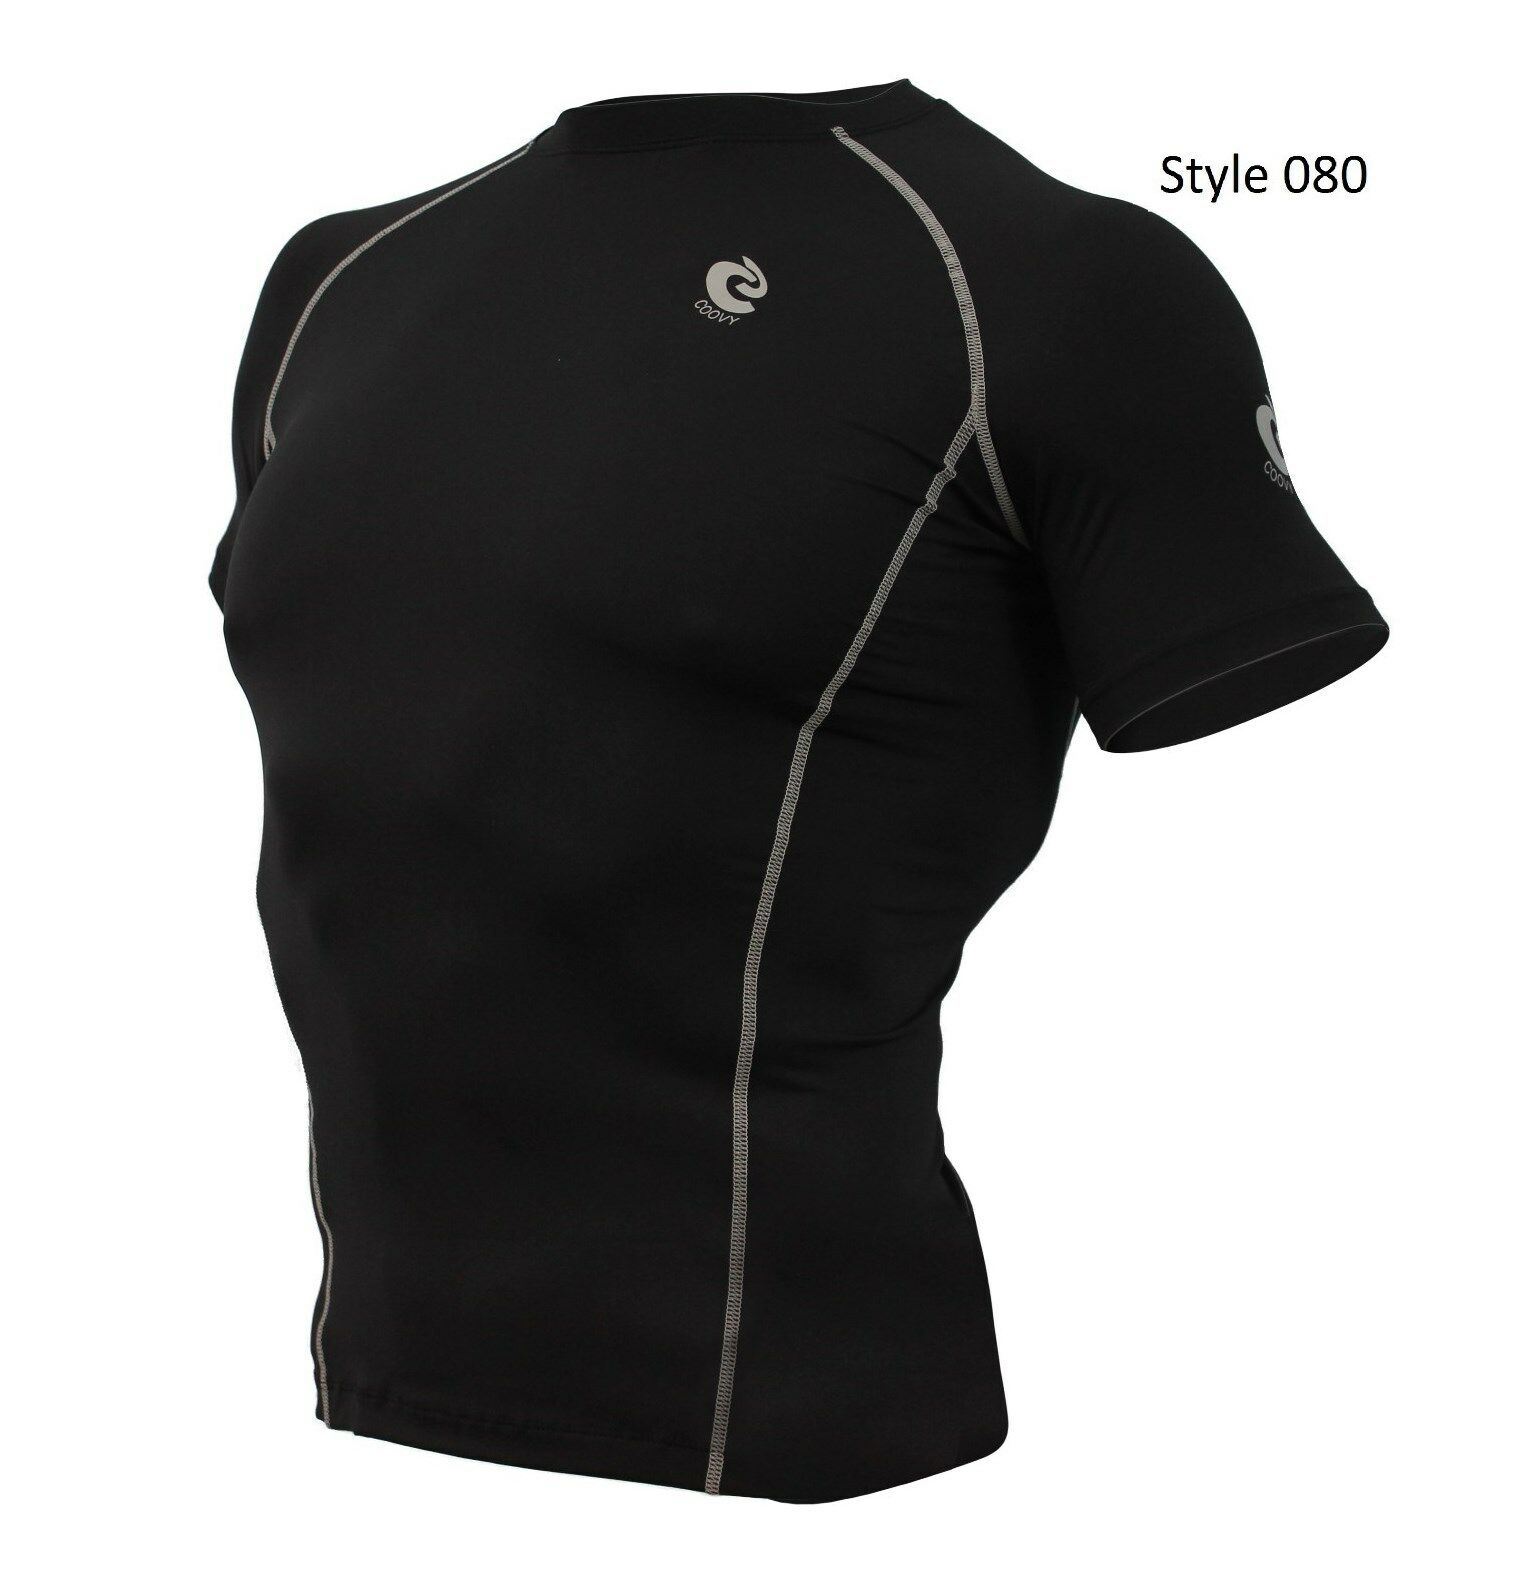 080 Black w/light reflect back Short Sleeve Shirt